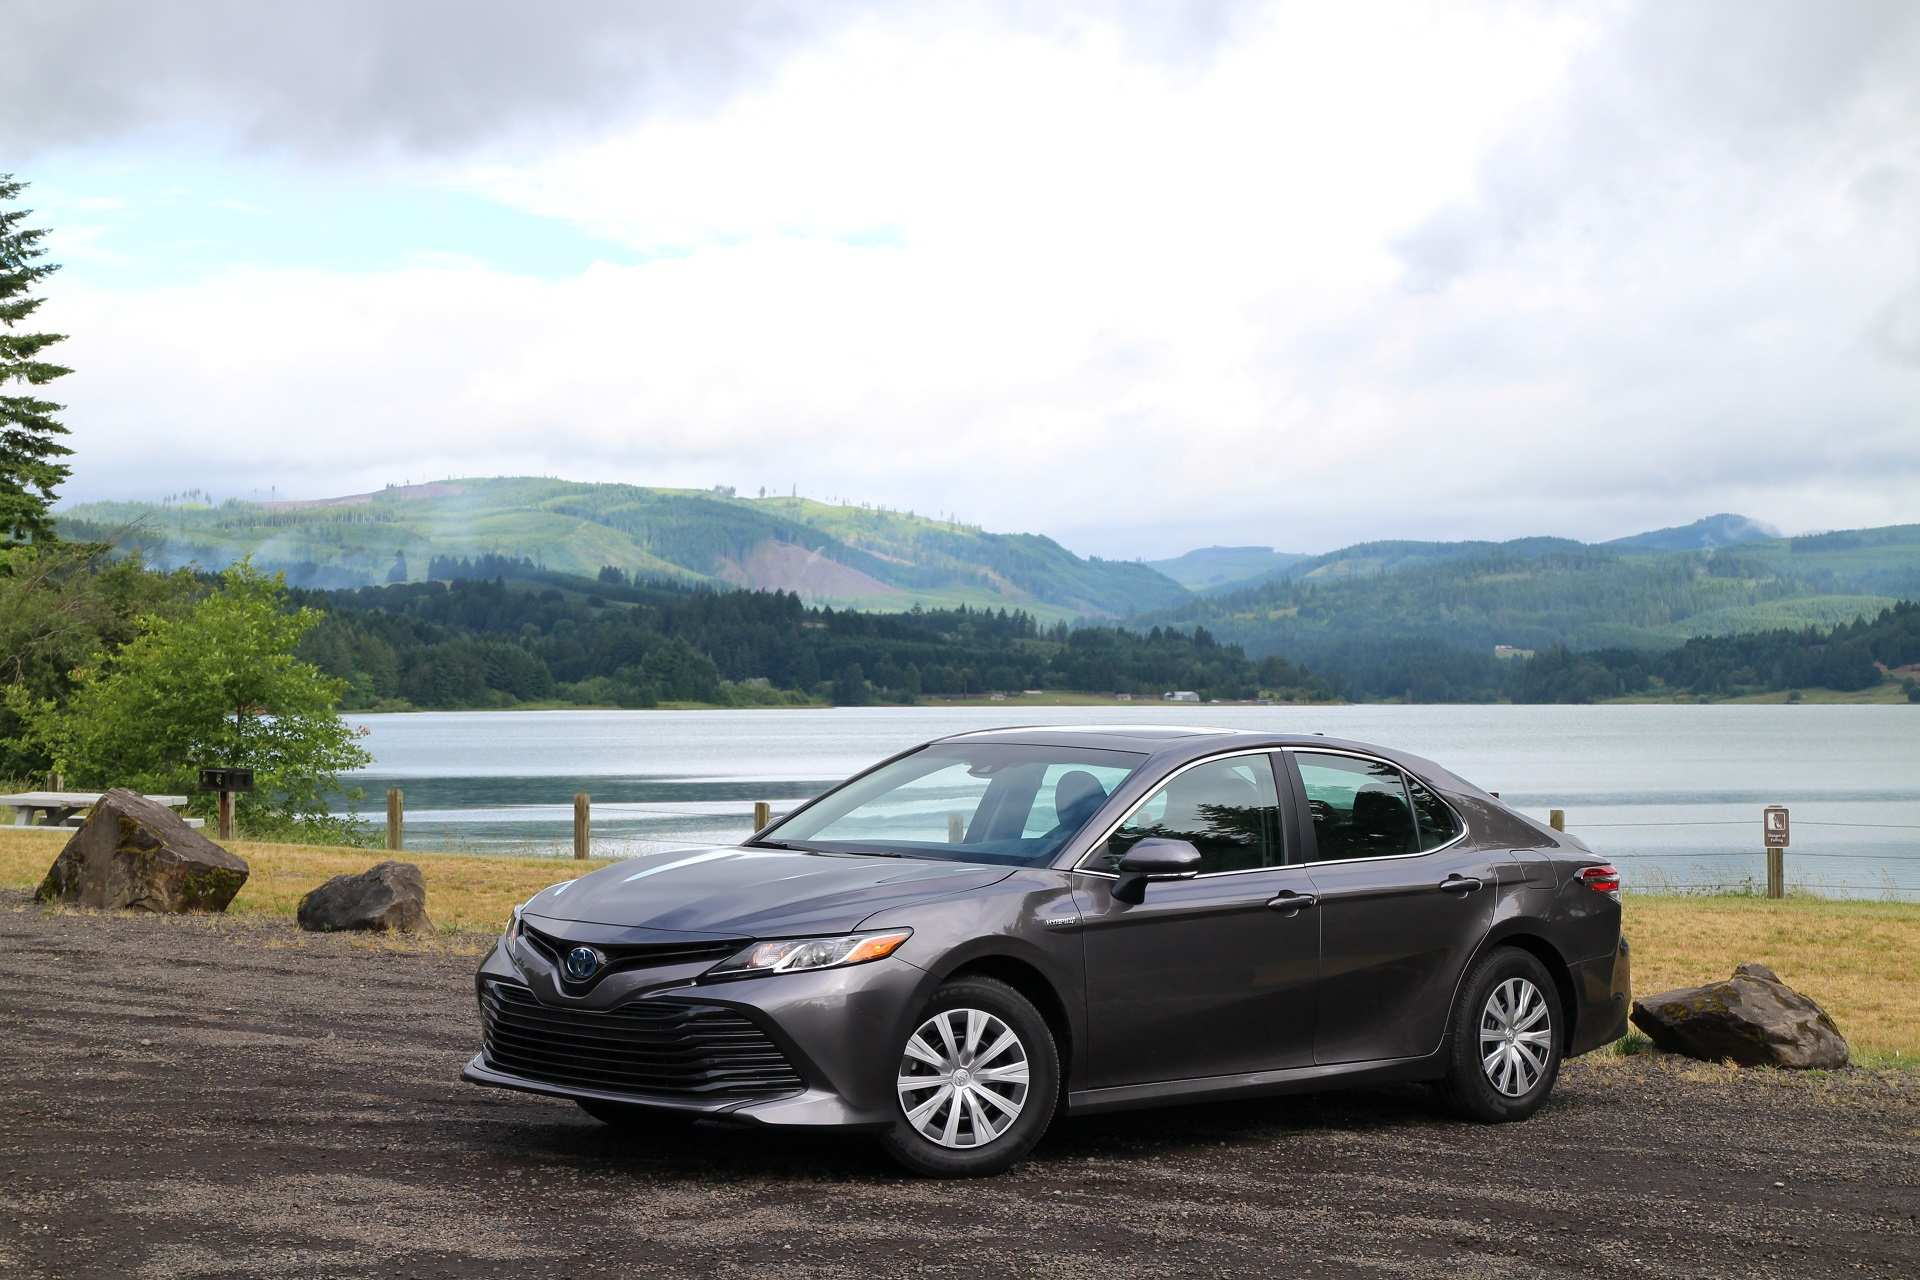 79 The Best 2019 Toyota Camry Se Hybrid Release